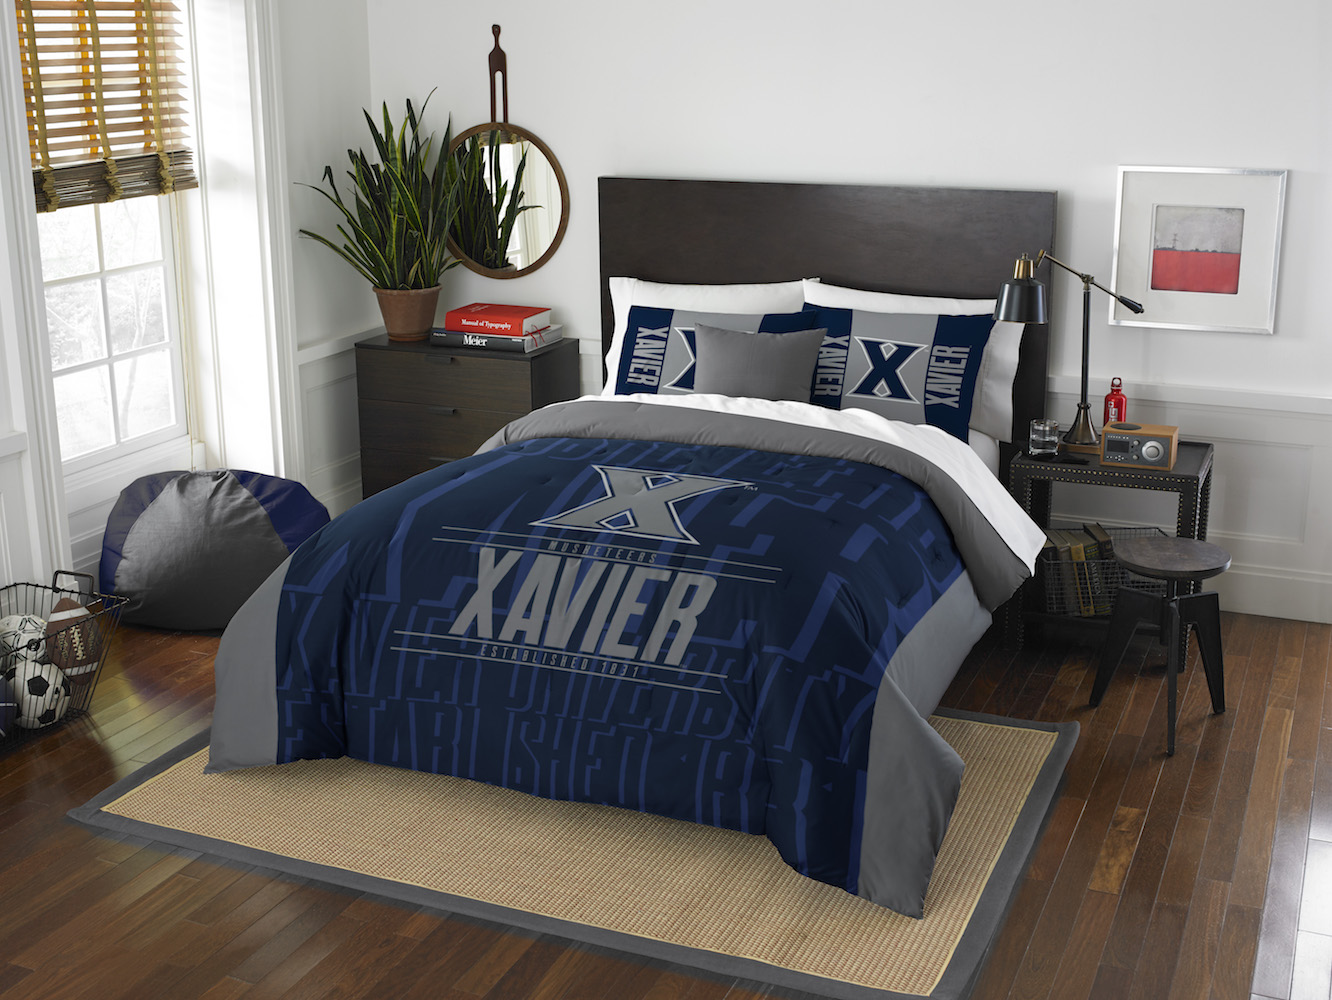 Xavier Musketeers QUEEN/FULL size Comforter and 2 Shams